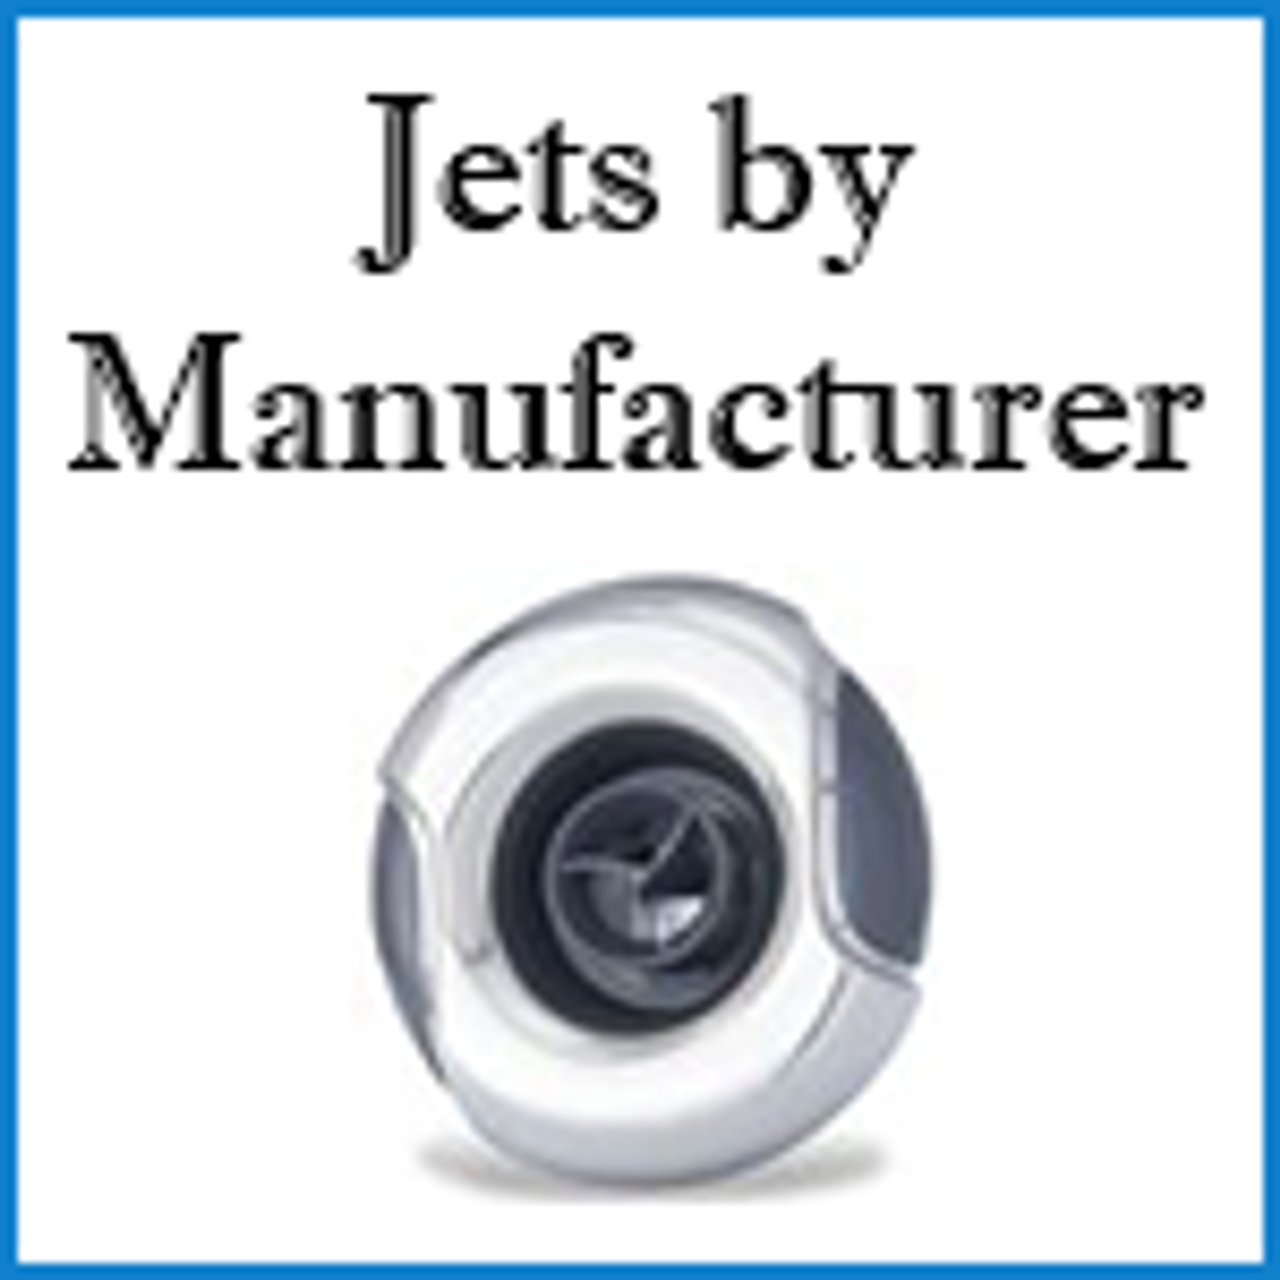 Jets by Manufacturer